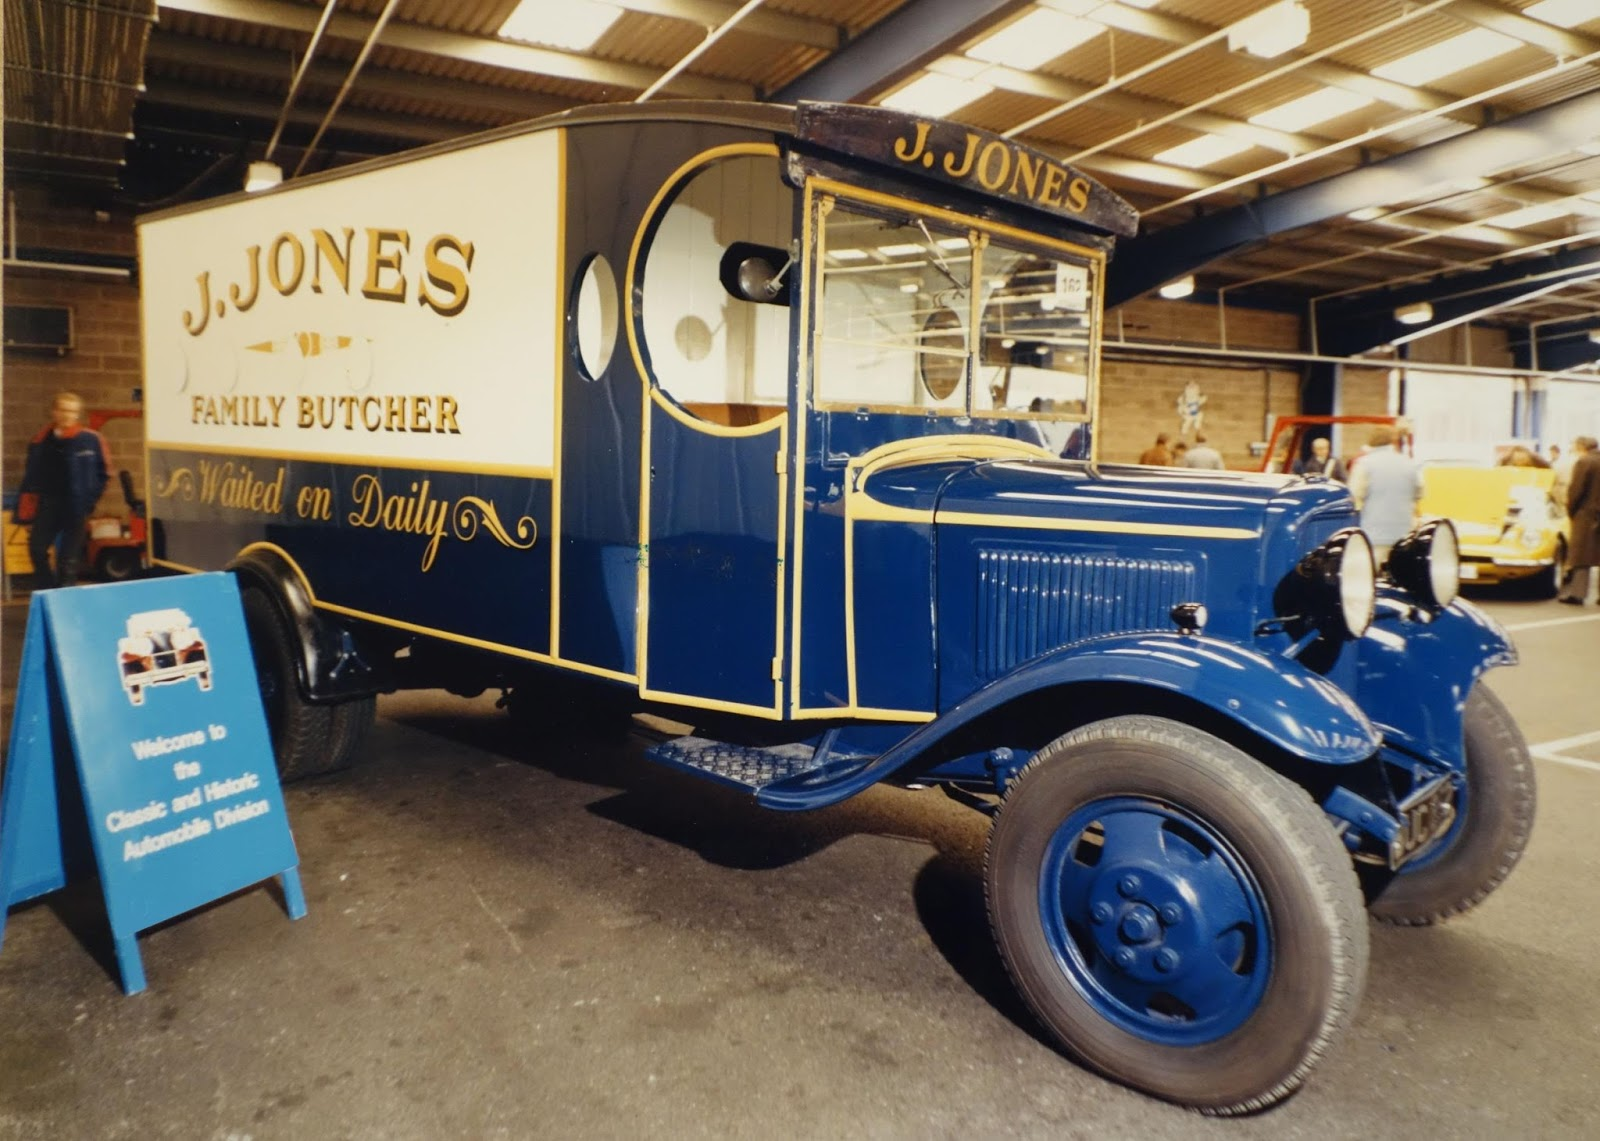 The motoring world bca the uk famous auction house celebrates during its long history bca has become one of the best known names in the motor industry and established the blueprint for success in the vehicle auction malvernweather Image collections